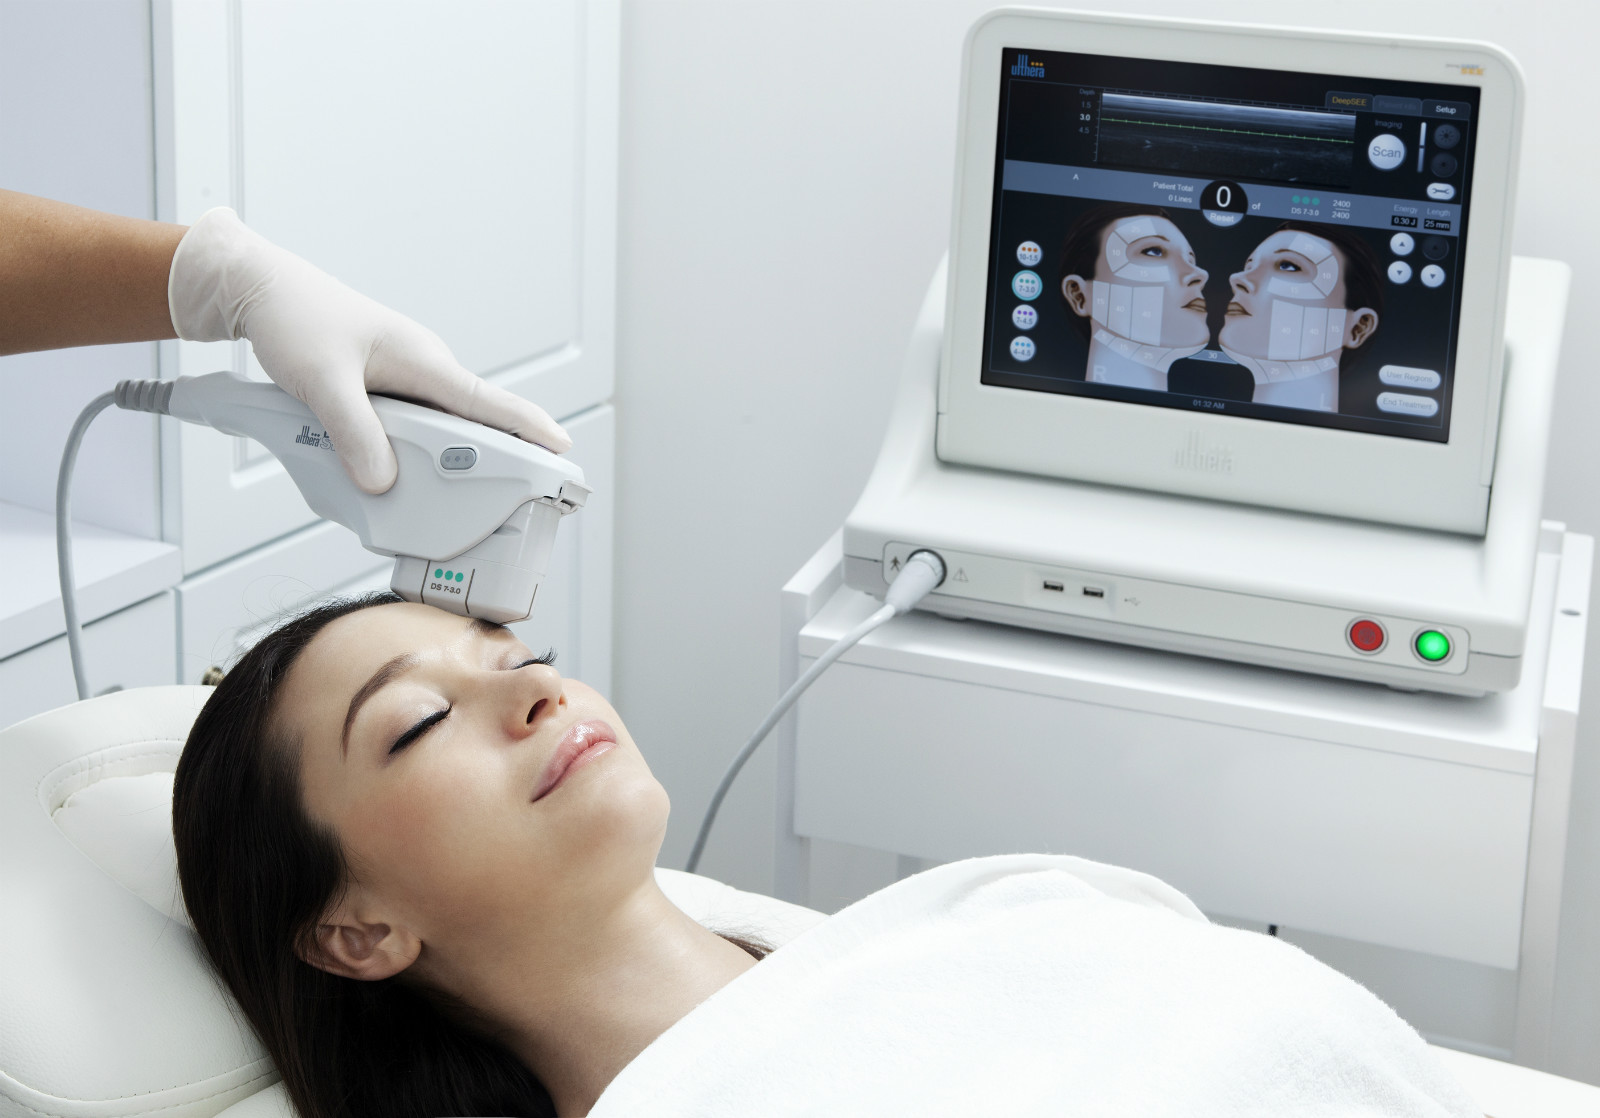 best non surgical face lift machine